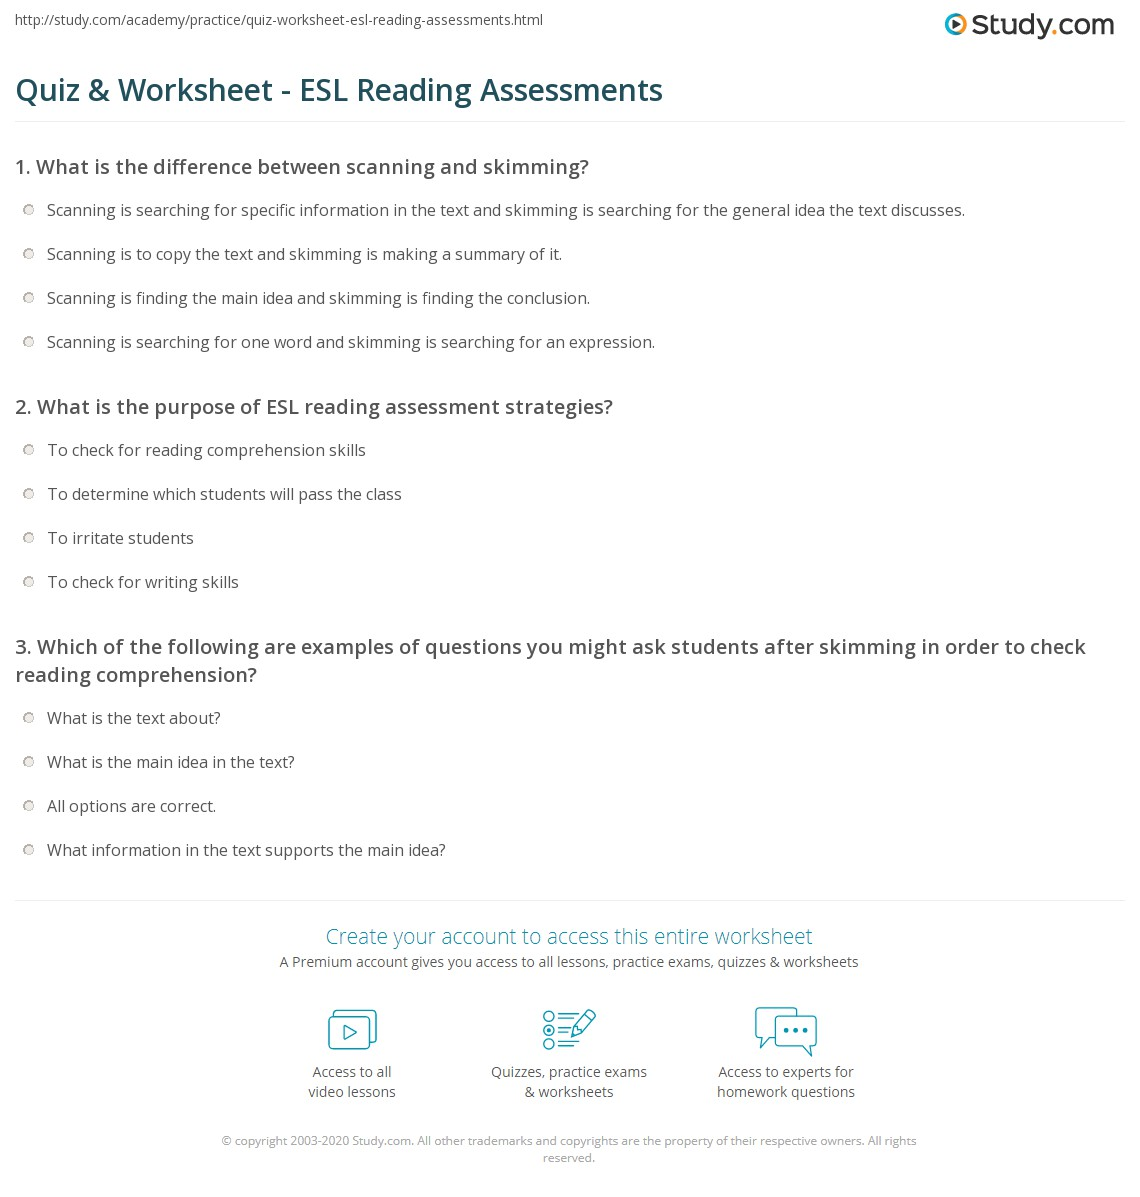 Worksheet Esl Reading quiz worksheet esl reading assessments study com print assessment strategies worksheet